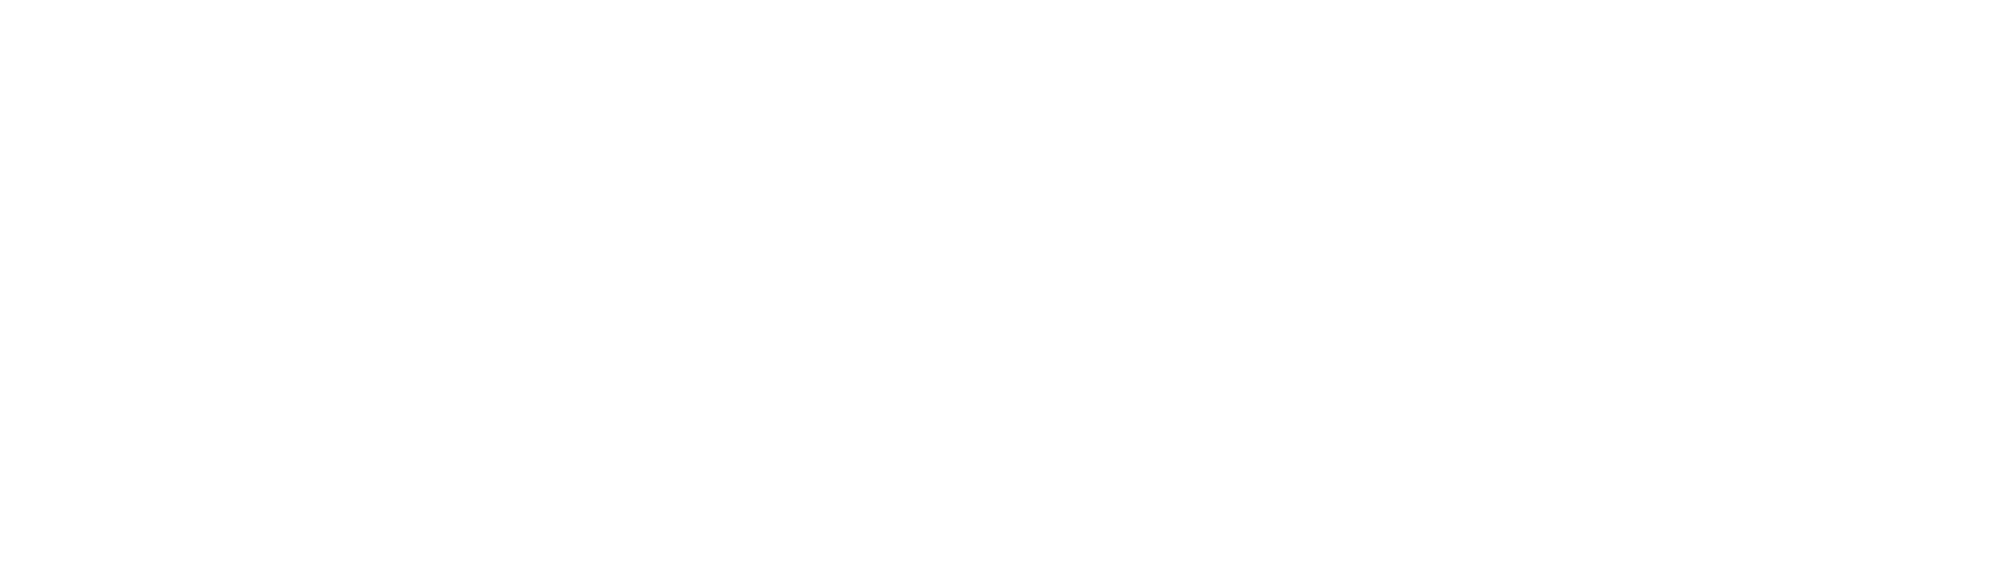 Lausitz Timing Logo